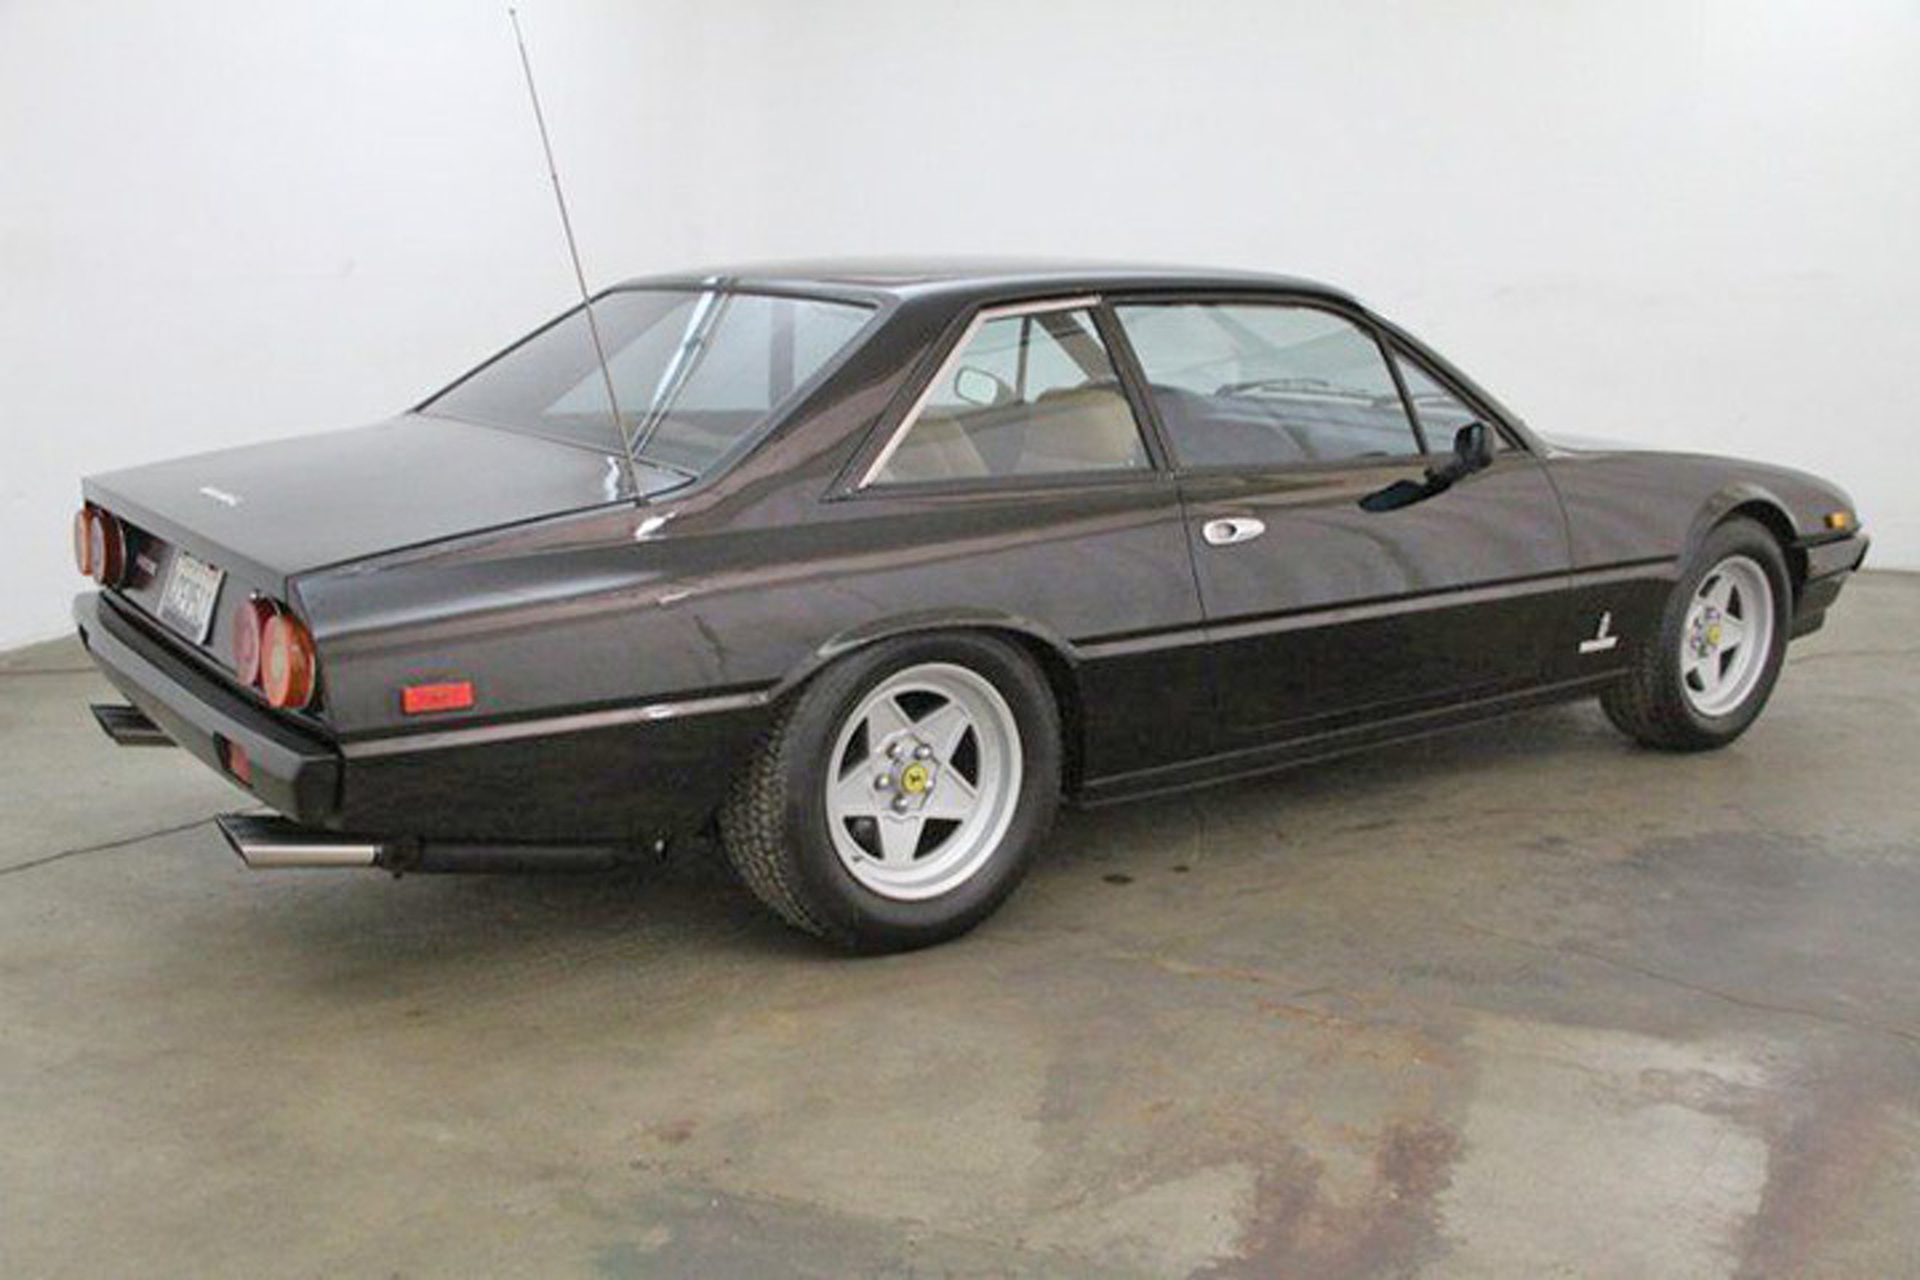 John McEnroe's Ferrari for Sale on eBay